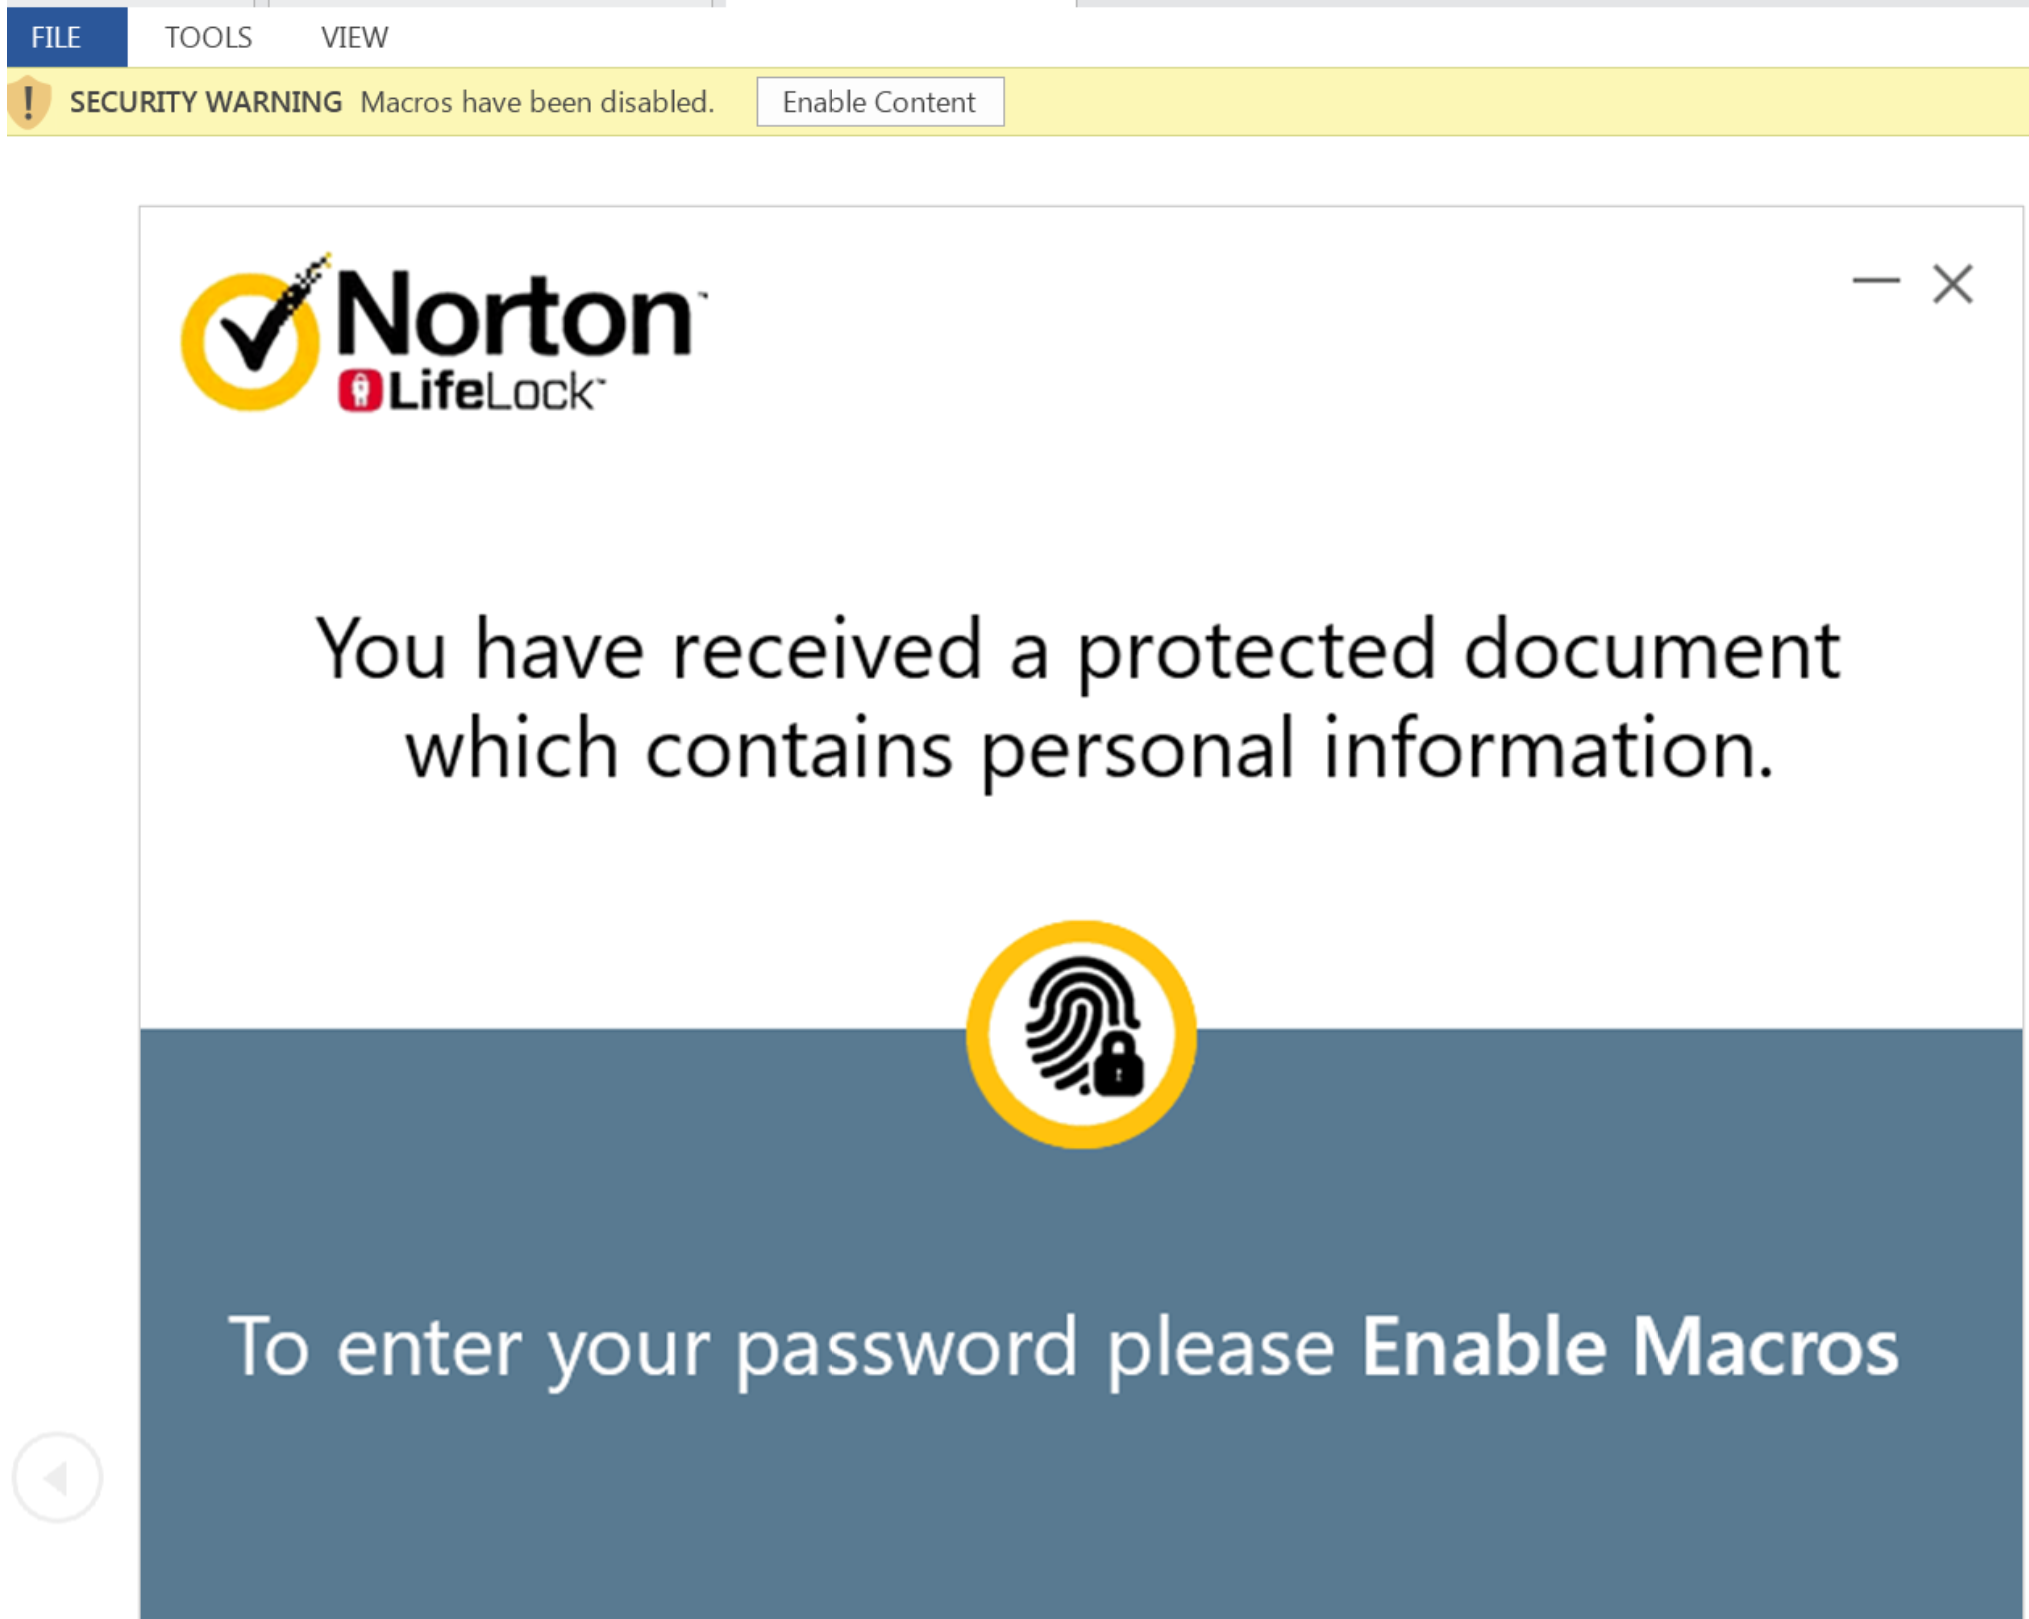 NetSupport Manager RAT delivered in false Norton Document